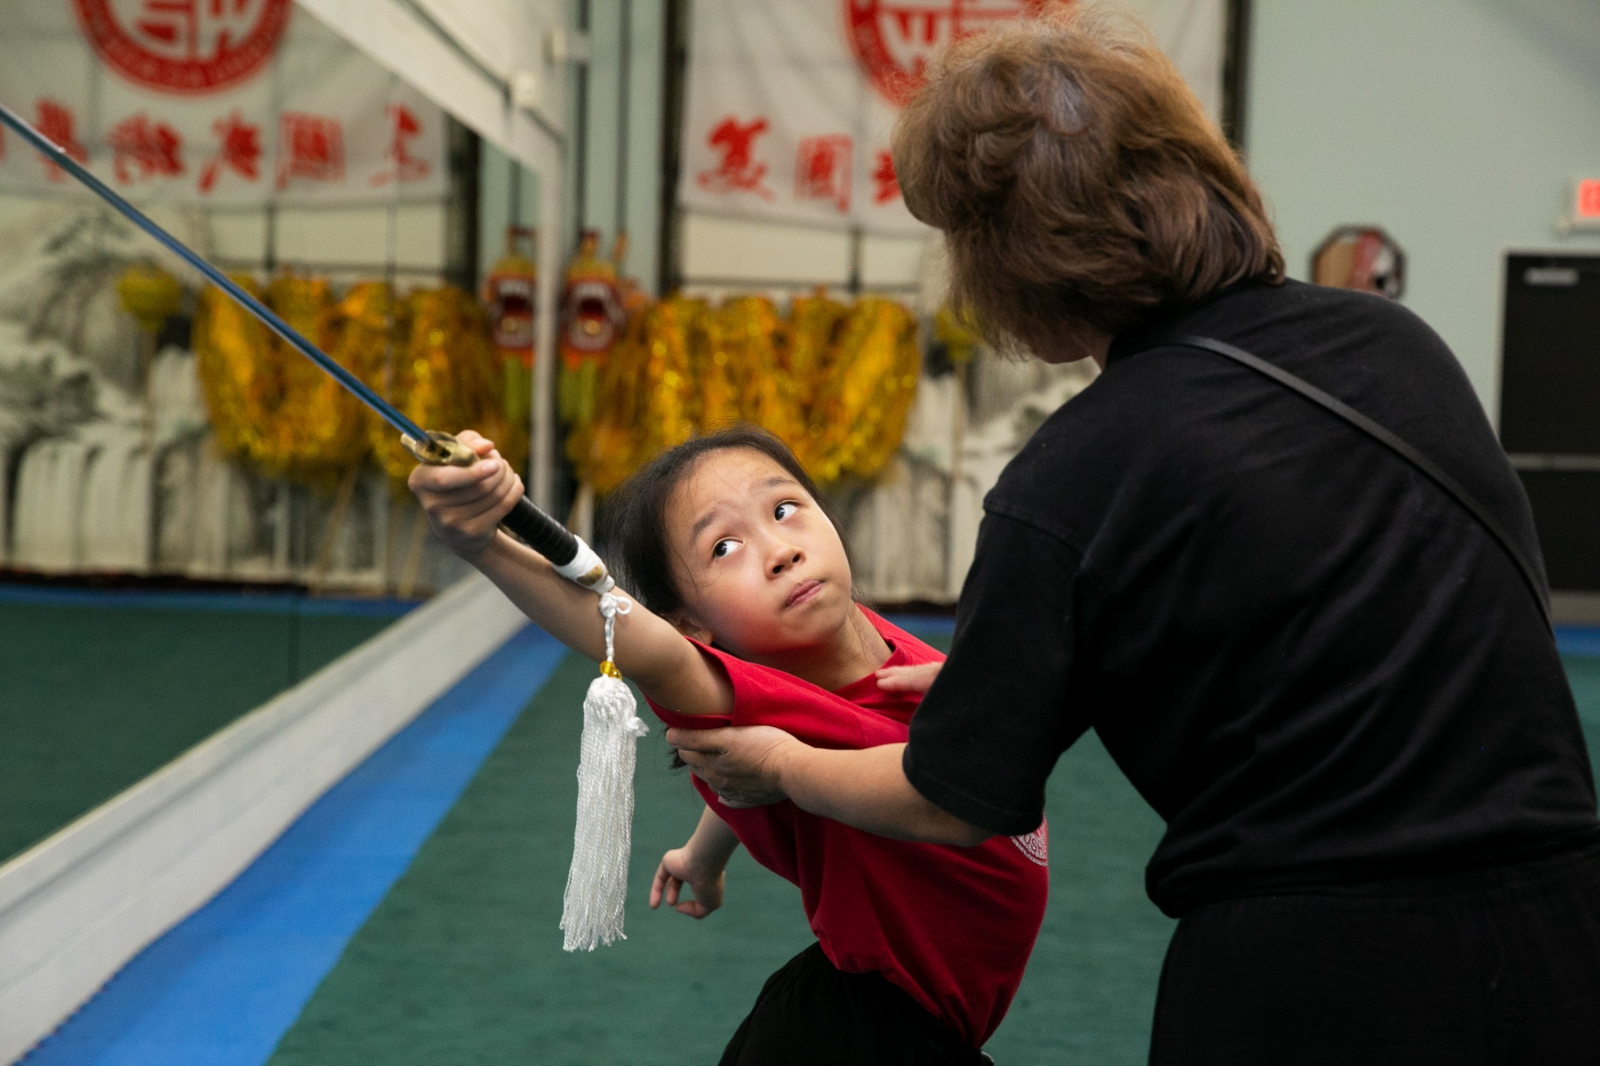 Twelve-year-old Jocelyn Gu practices her performance for the USAWKF National Team Trials while Zhang corrects her form.